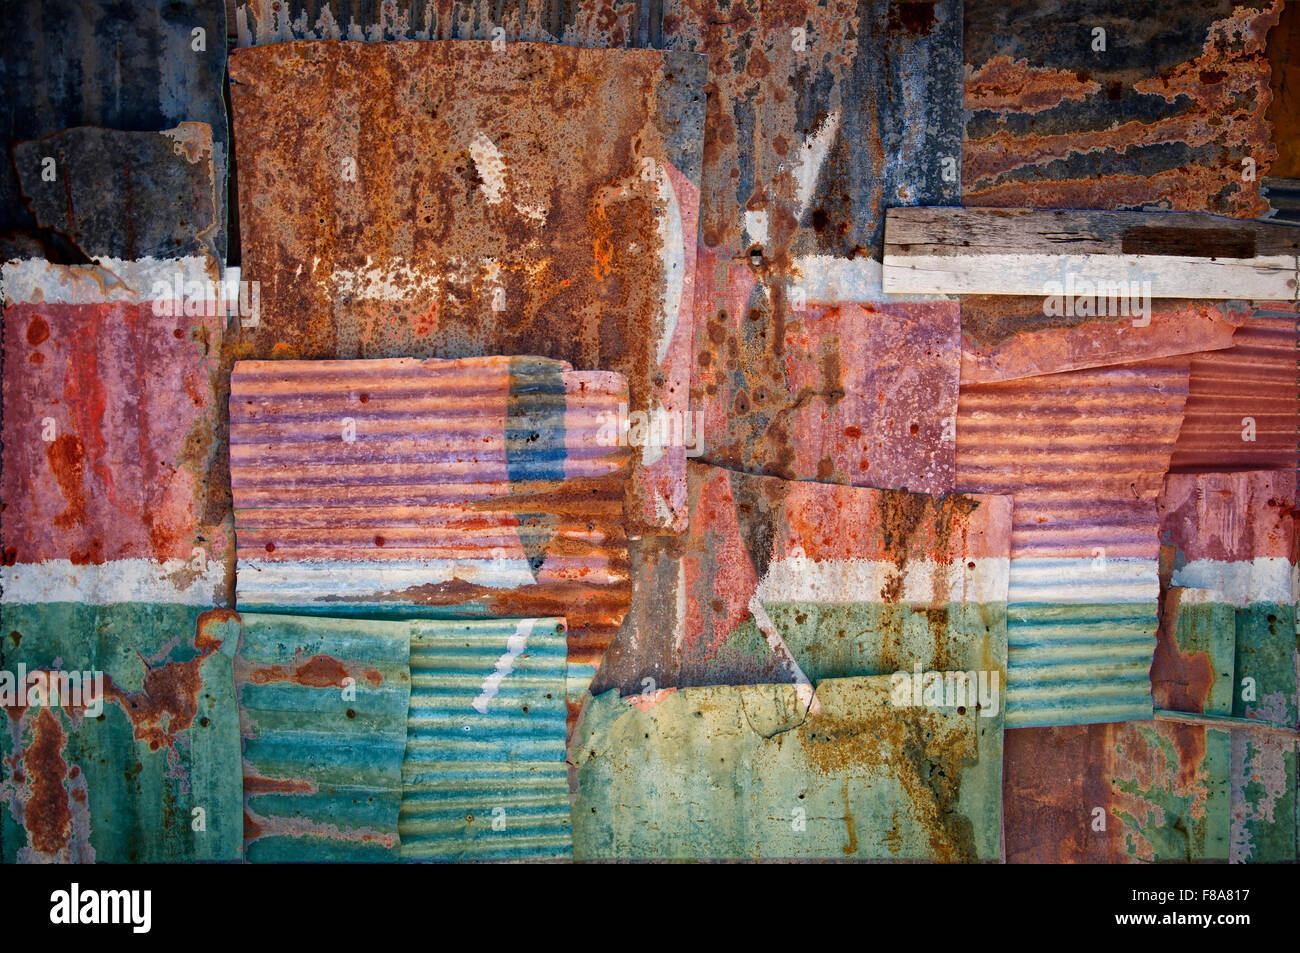 An abstract background image of the flag of Kenya painted on to rusty corrugated iron sheets overlapping to form Stock Photo